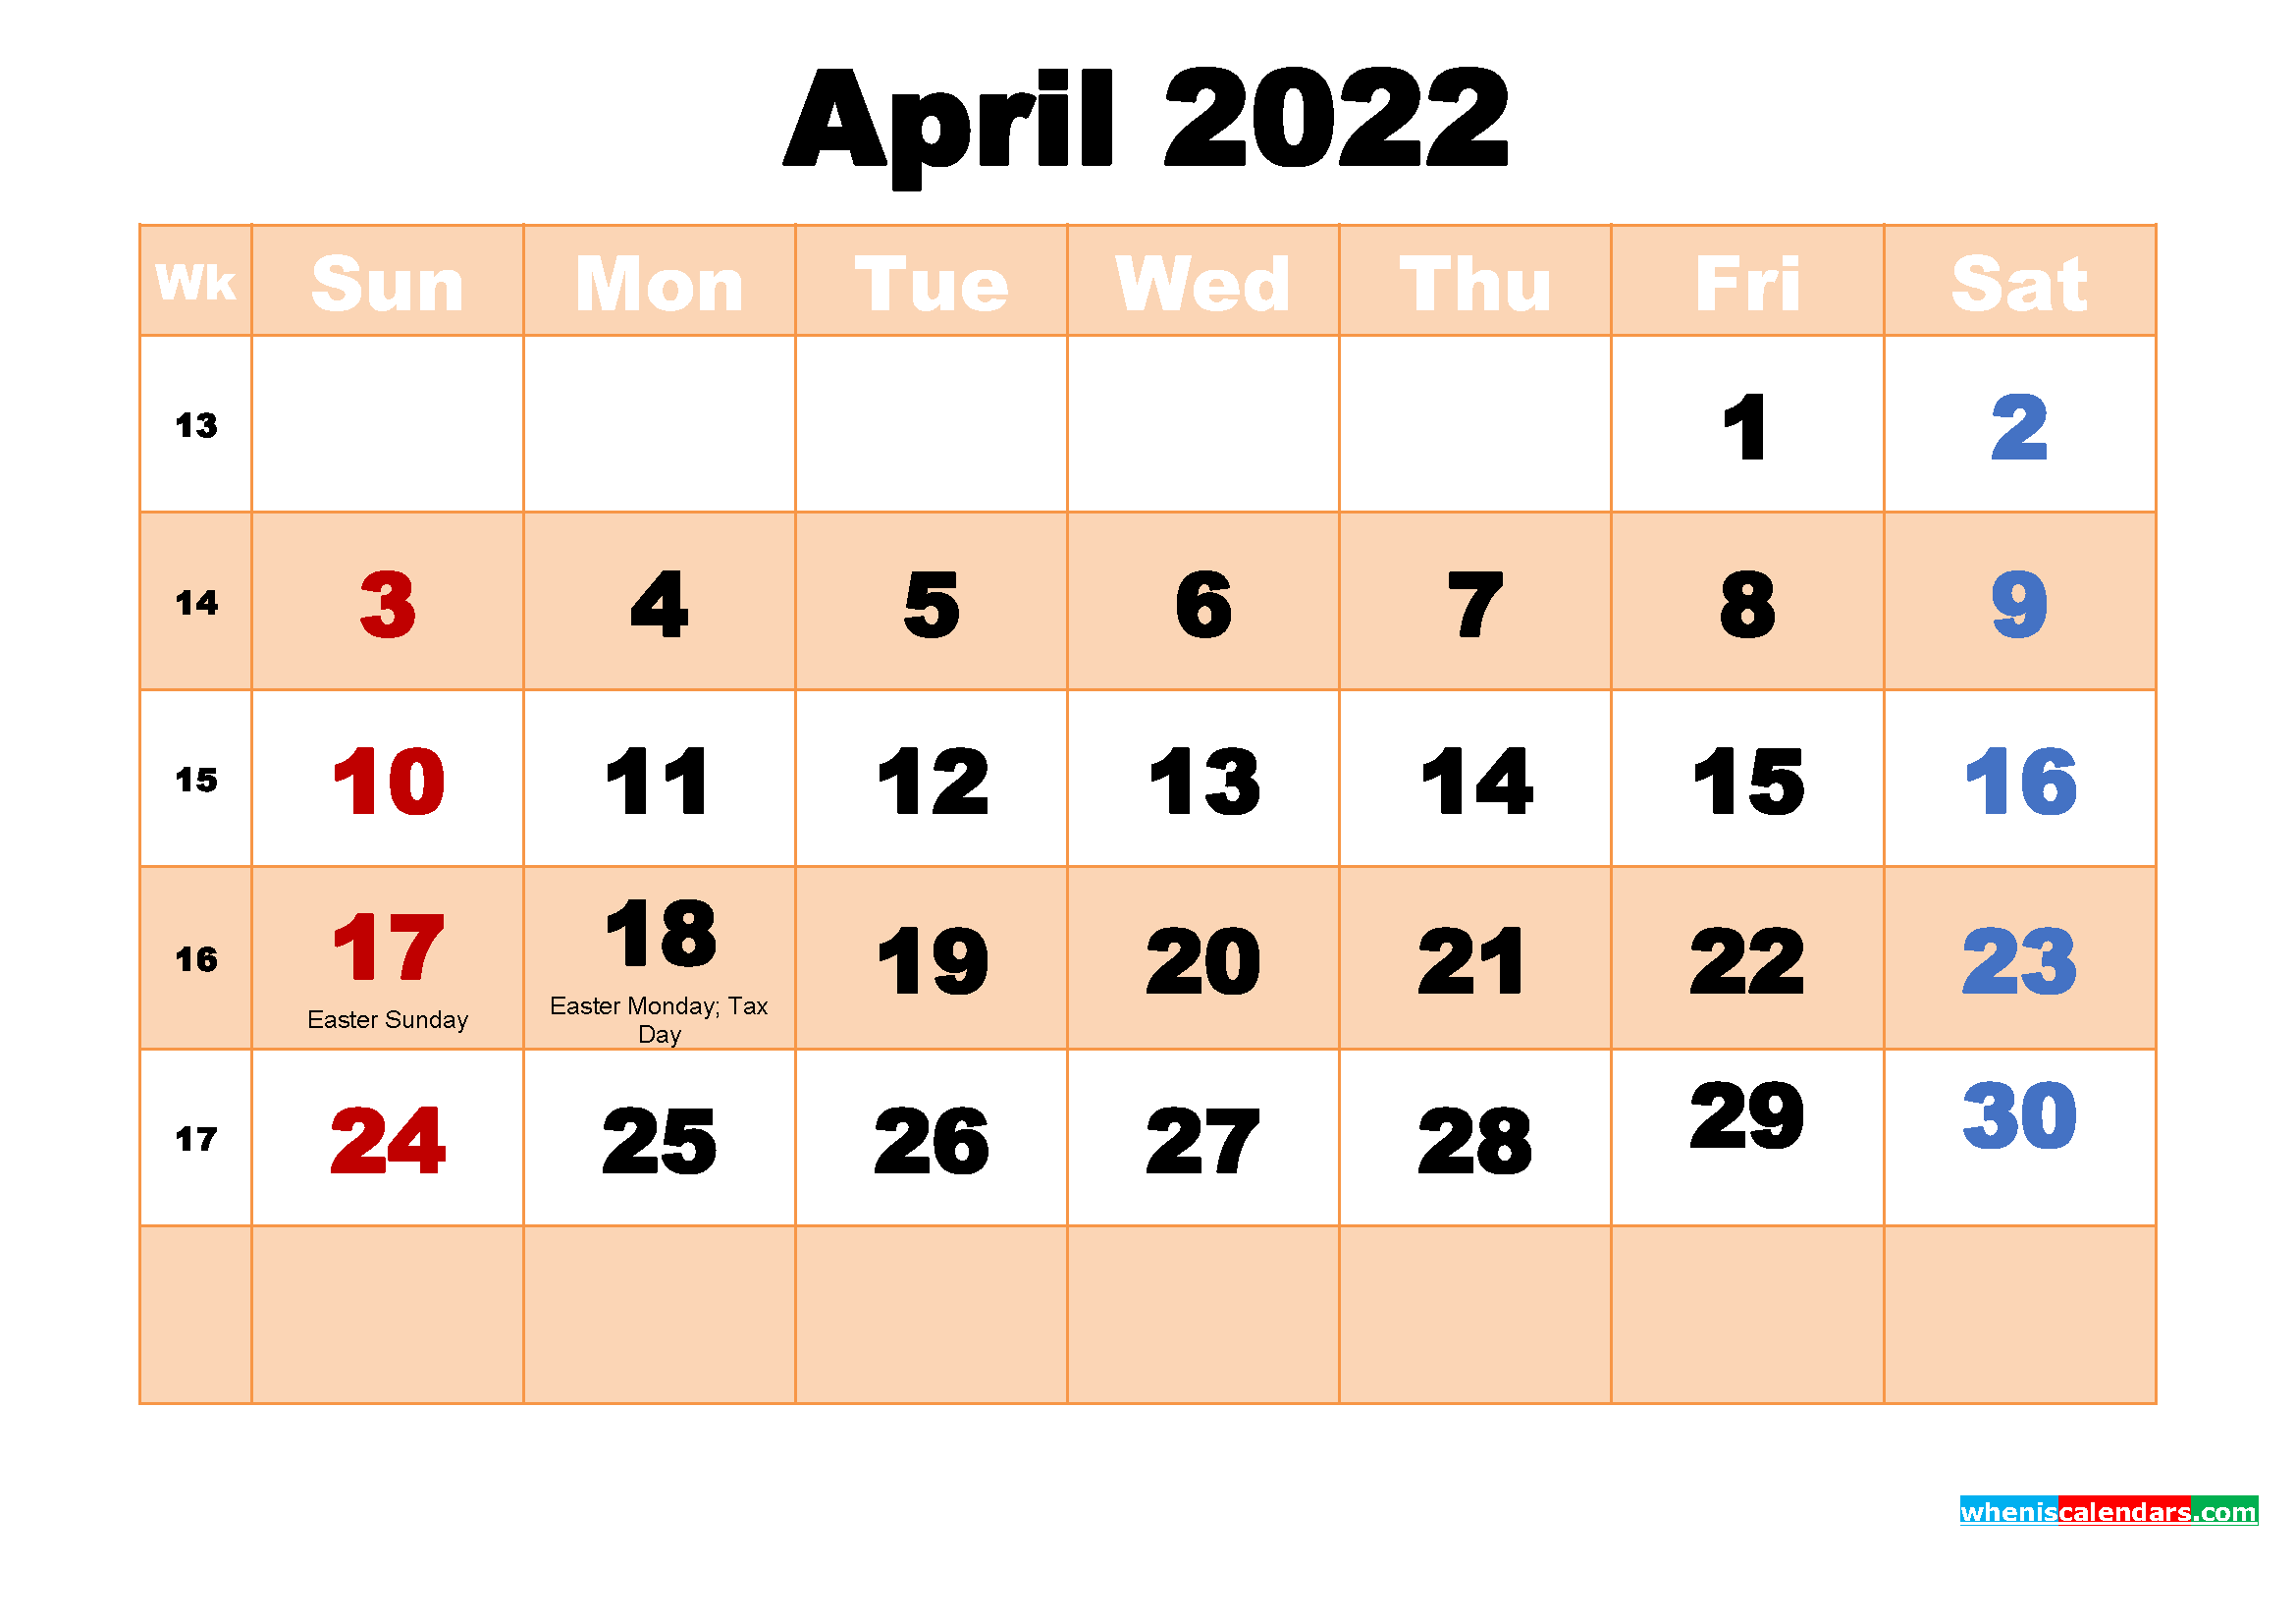 April 2022 Calendar with Holidays Wallpaper